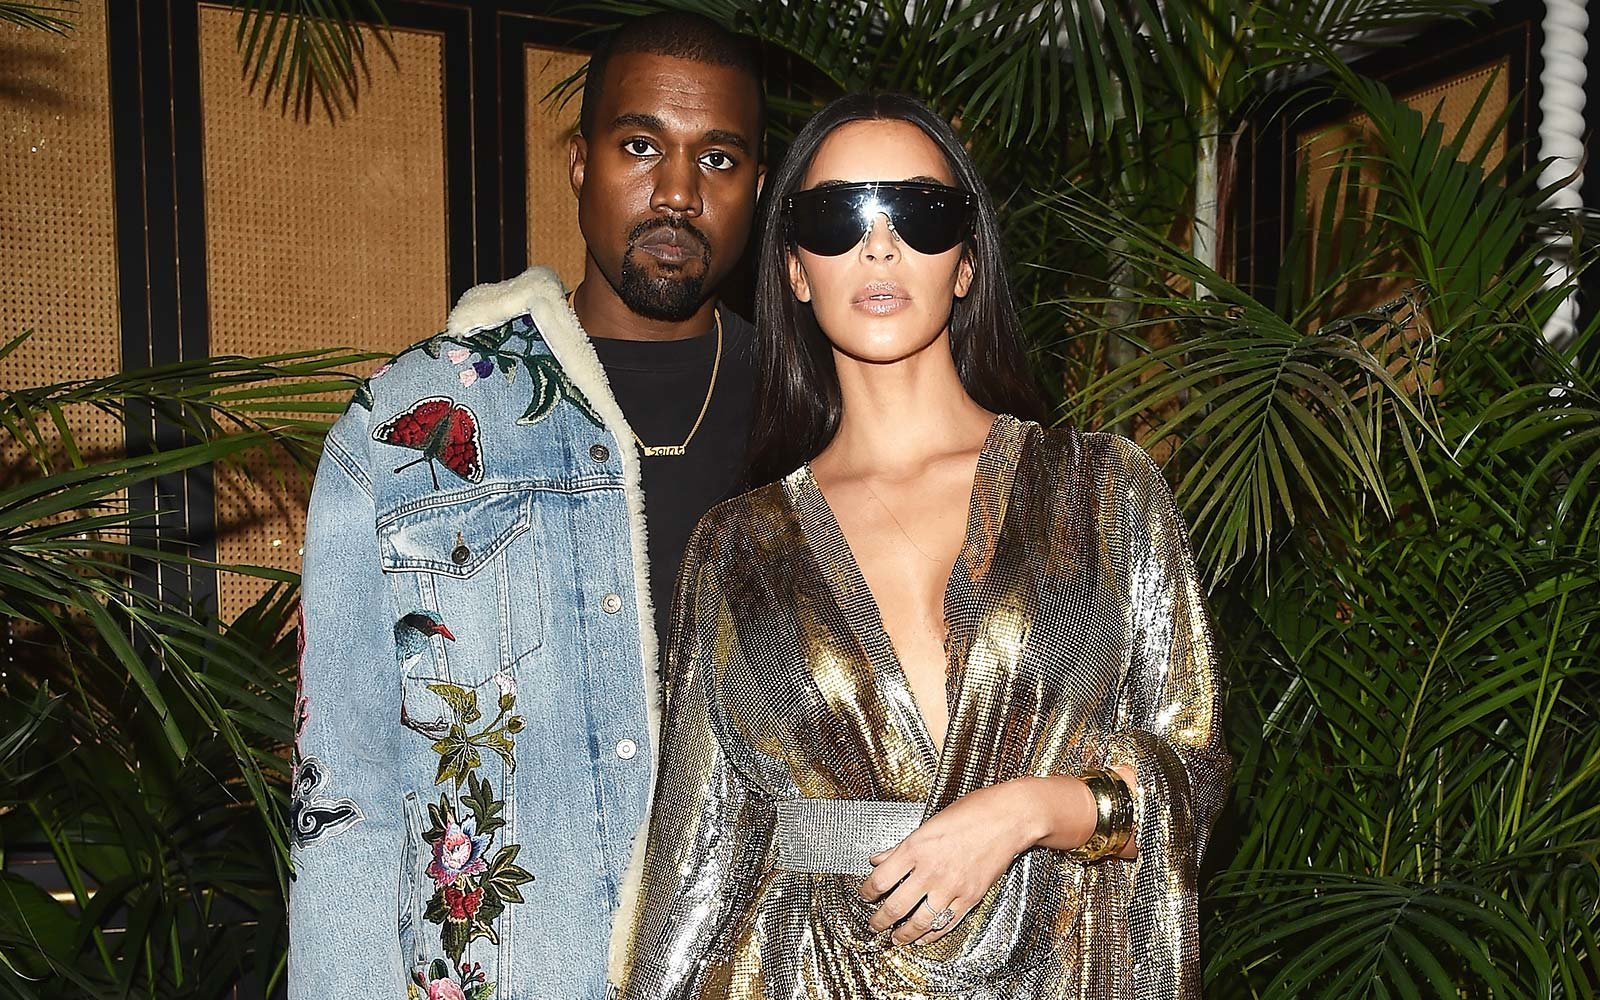 Kanye West and Kim Kardashian Balmain party Paris Fashion Week